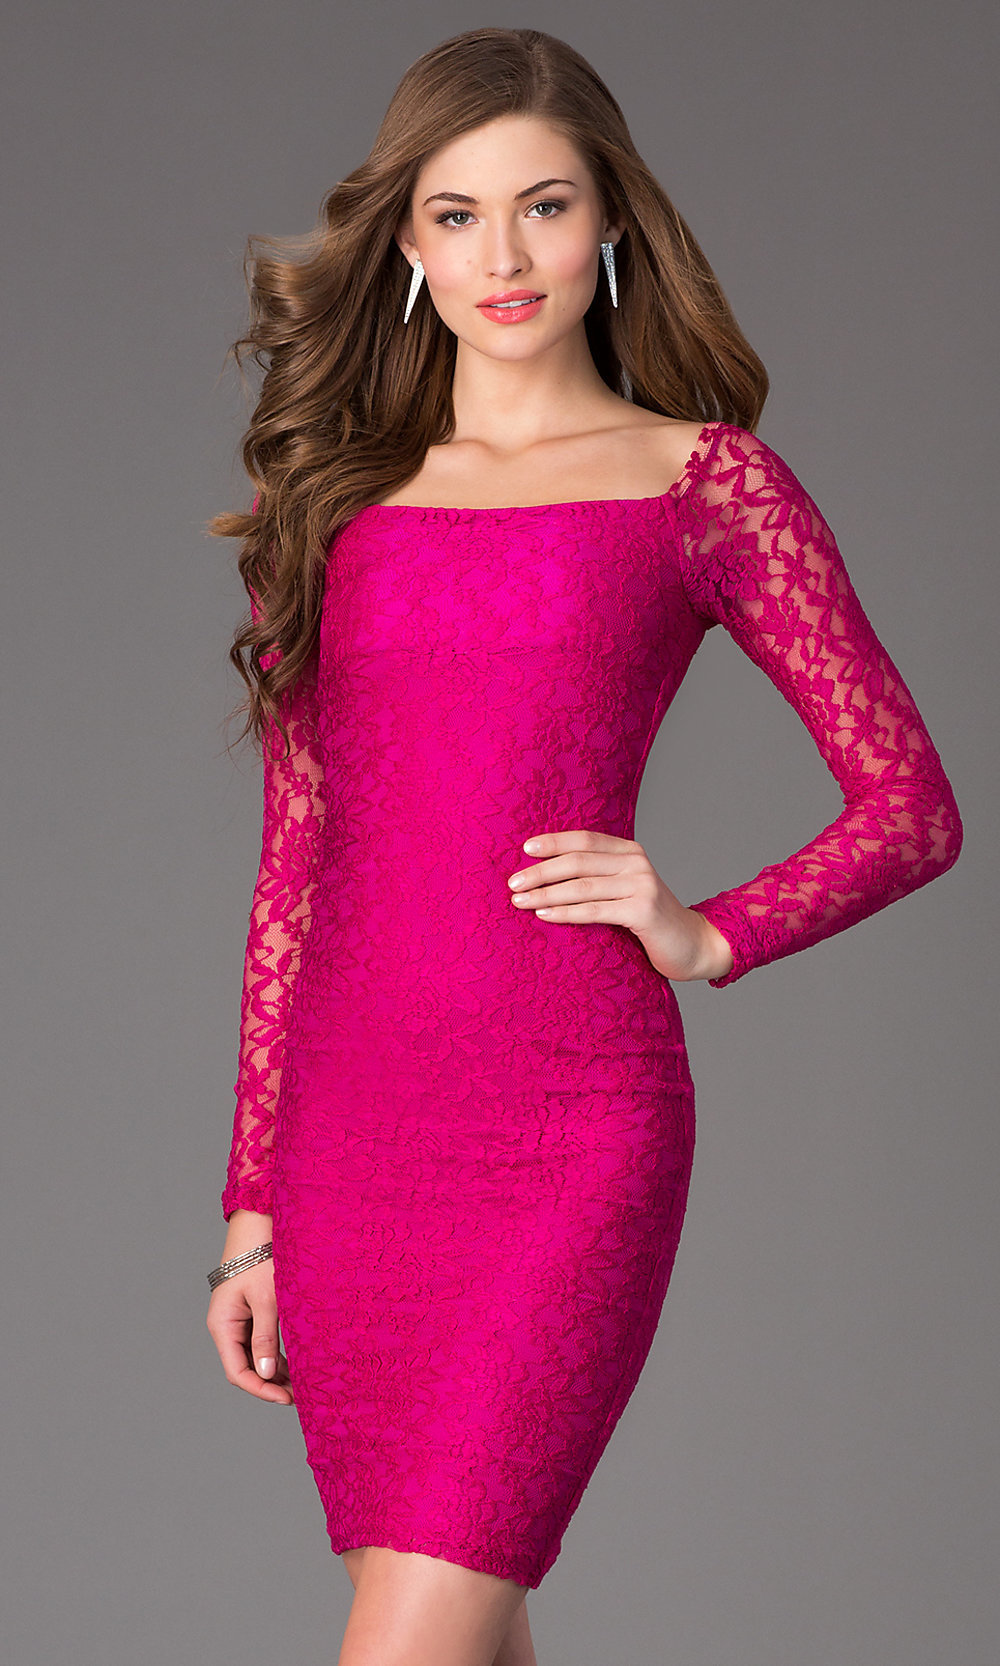 Long Sleeve Lace Knee Length Party Dress Promgirl